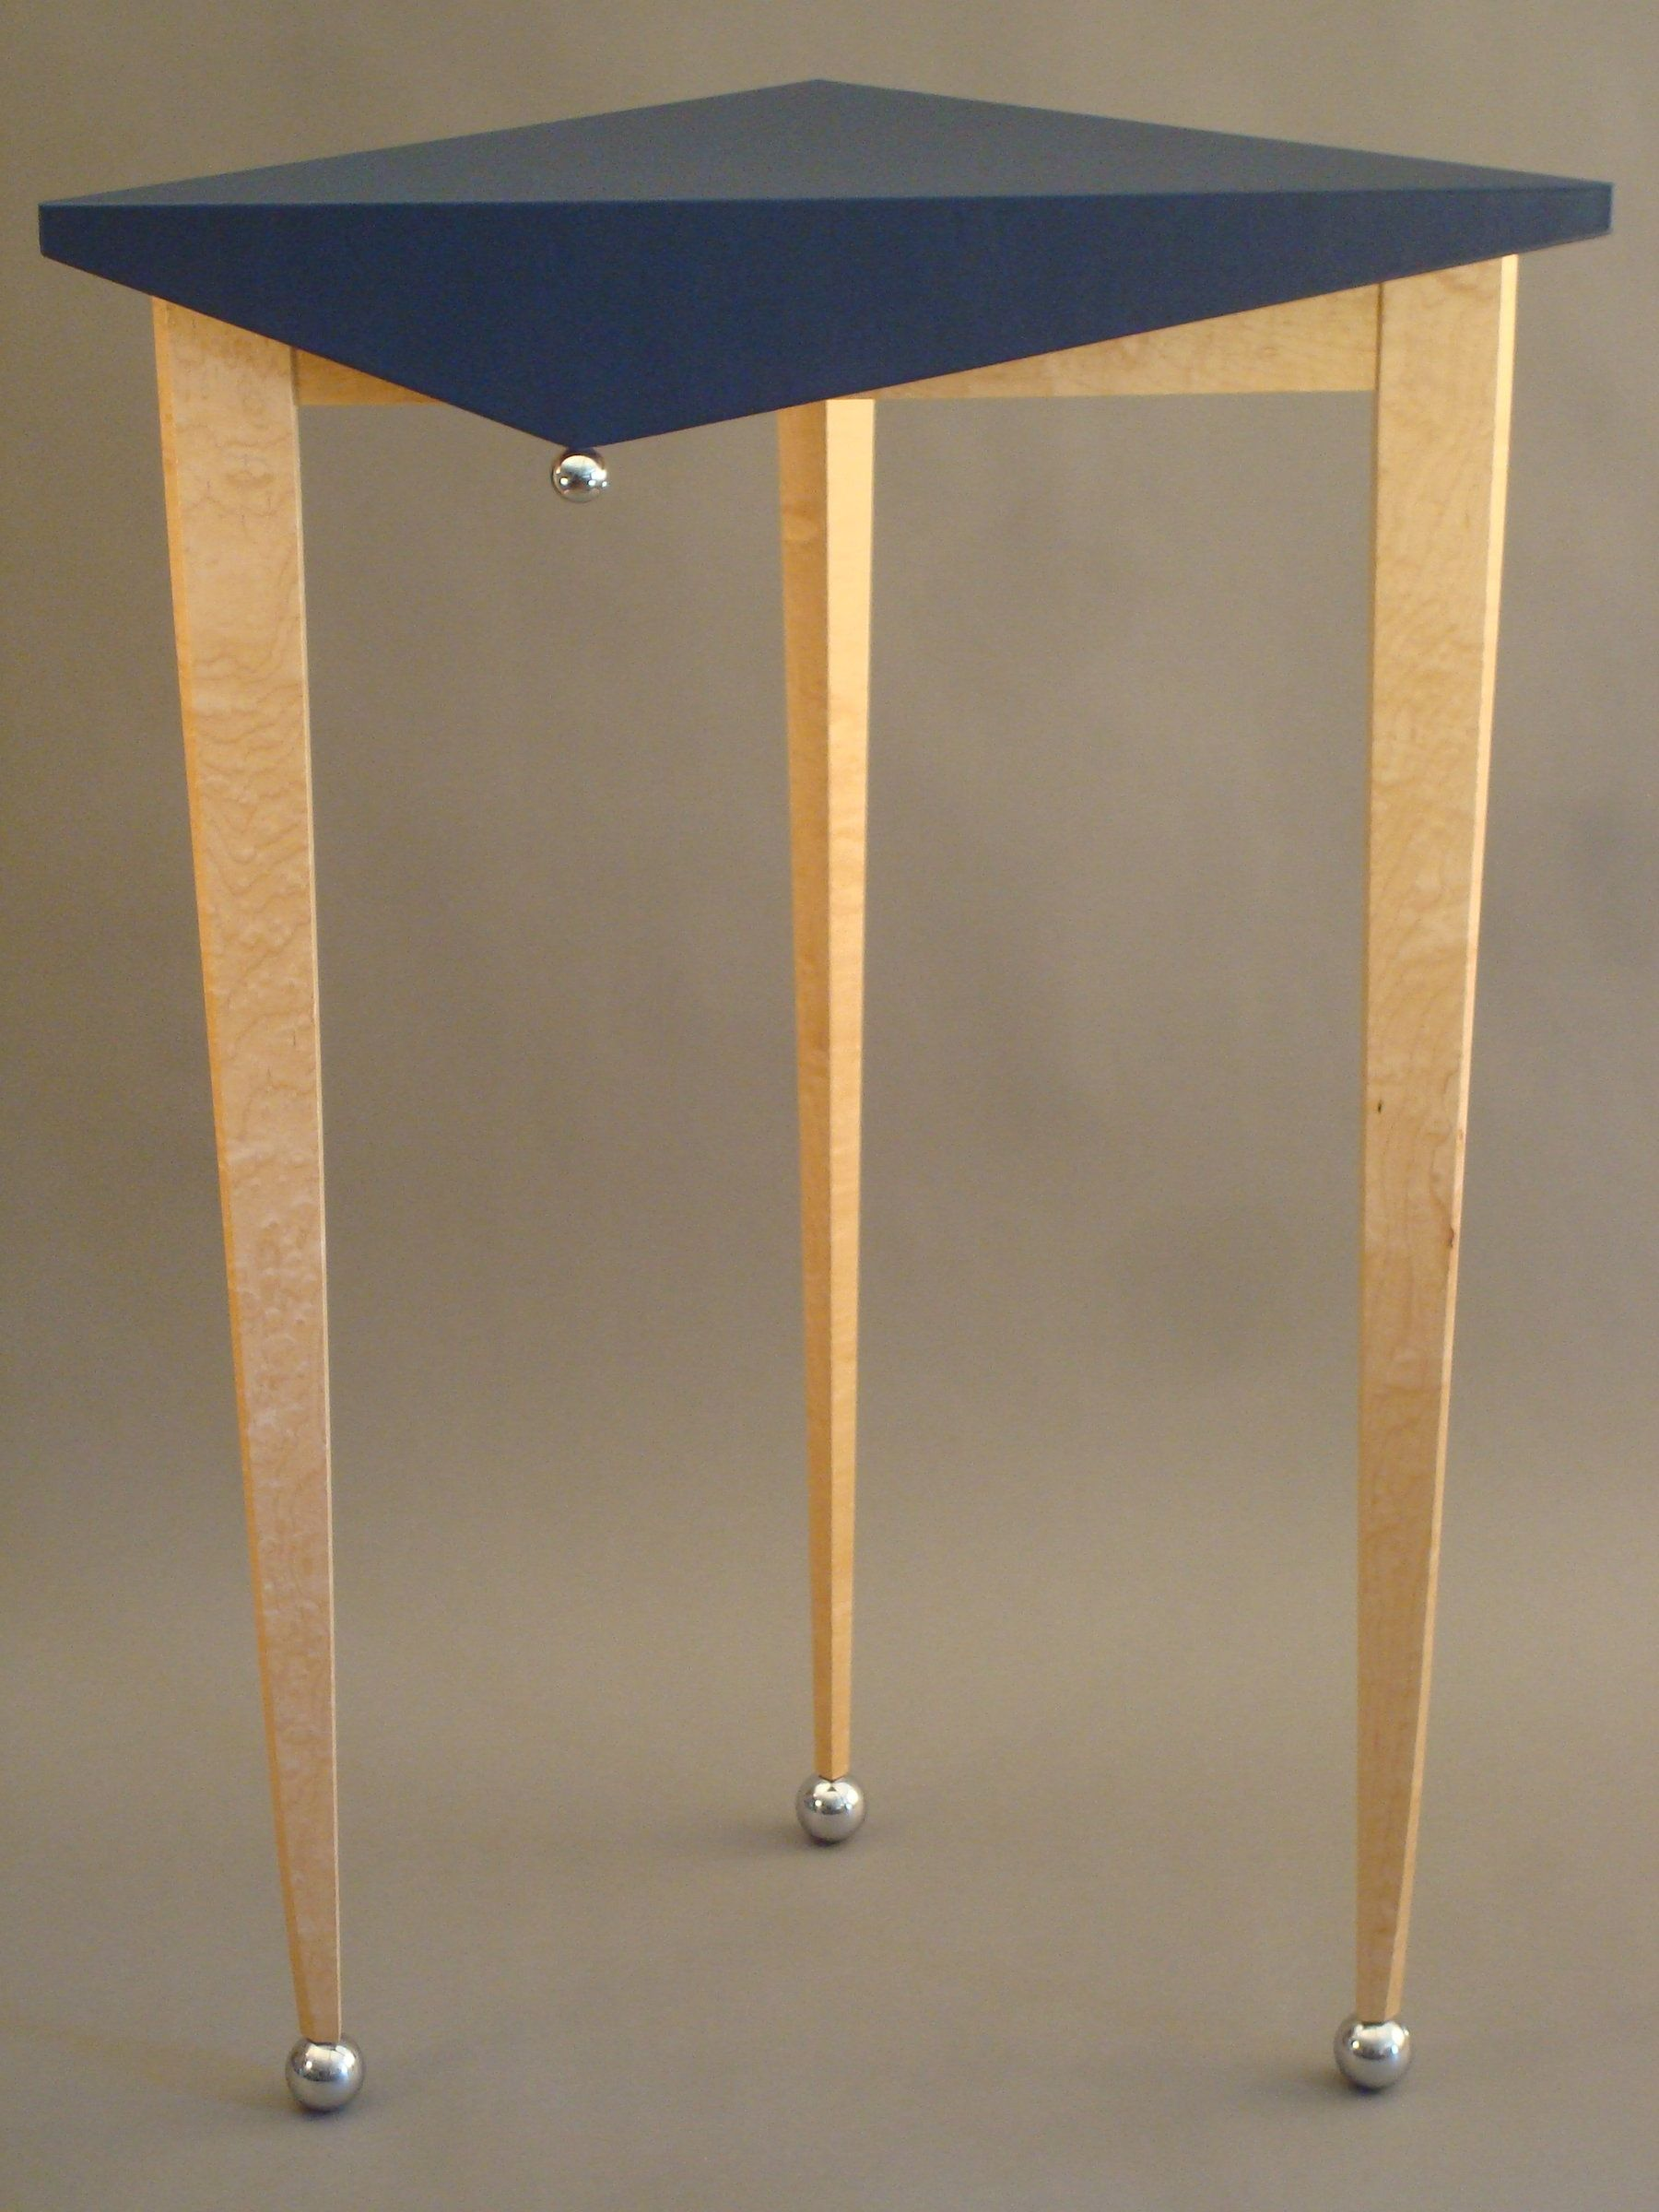 Tall Jester Table By Tim Wells Triangular Corner Table Made With